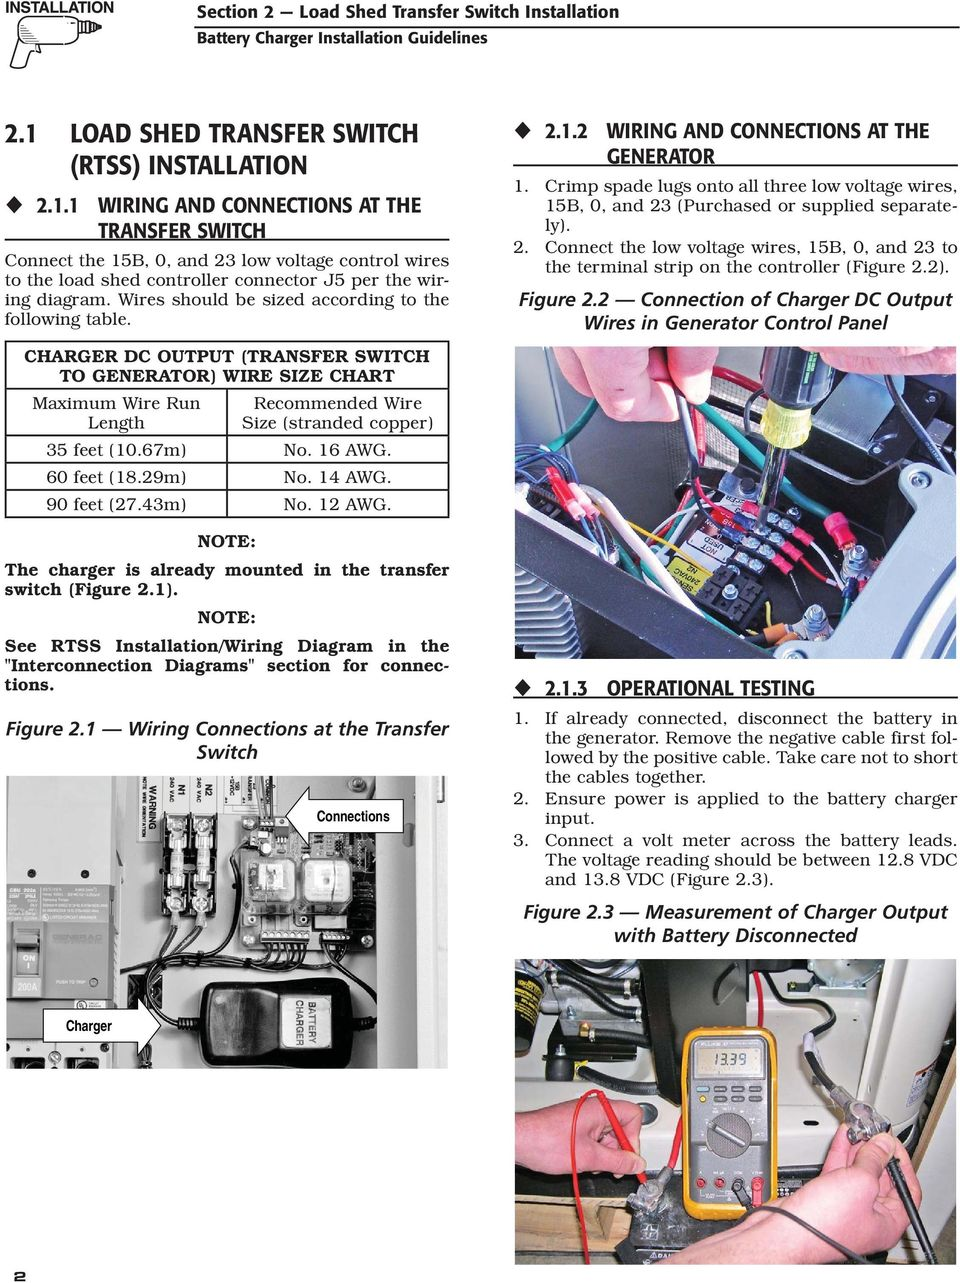 Air Cooled Generator Battery Charger Installation Guidelines Pdf Control Wiring Diagram 1 And Connections At The Transfer Switch Connect 15b 0 23